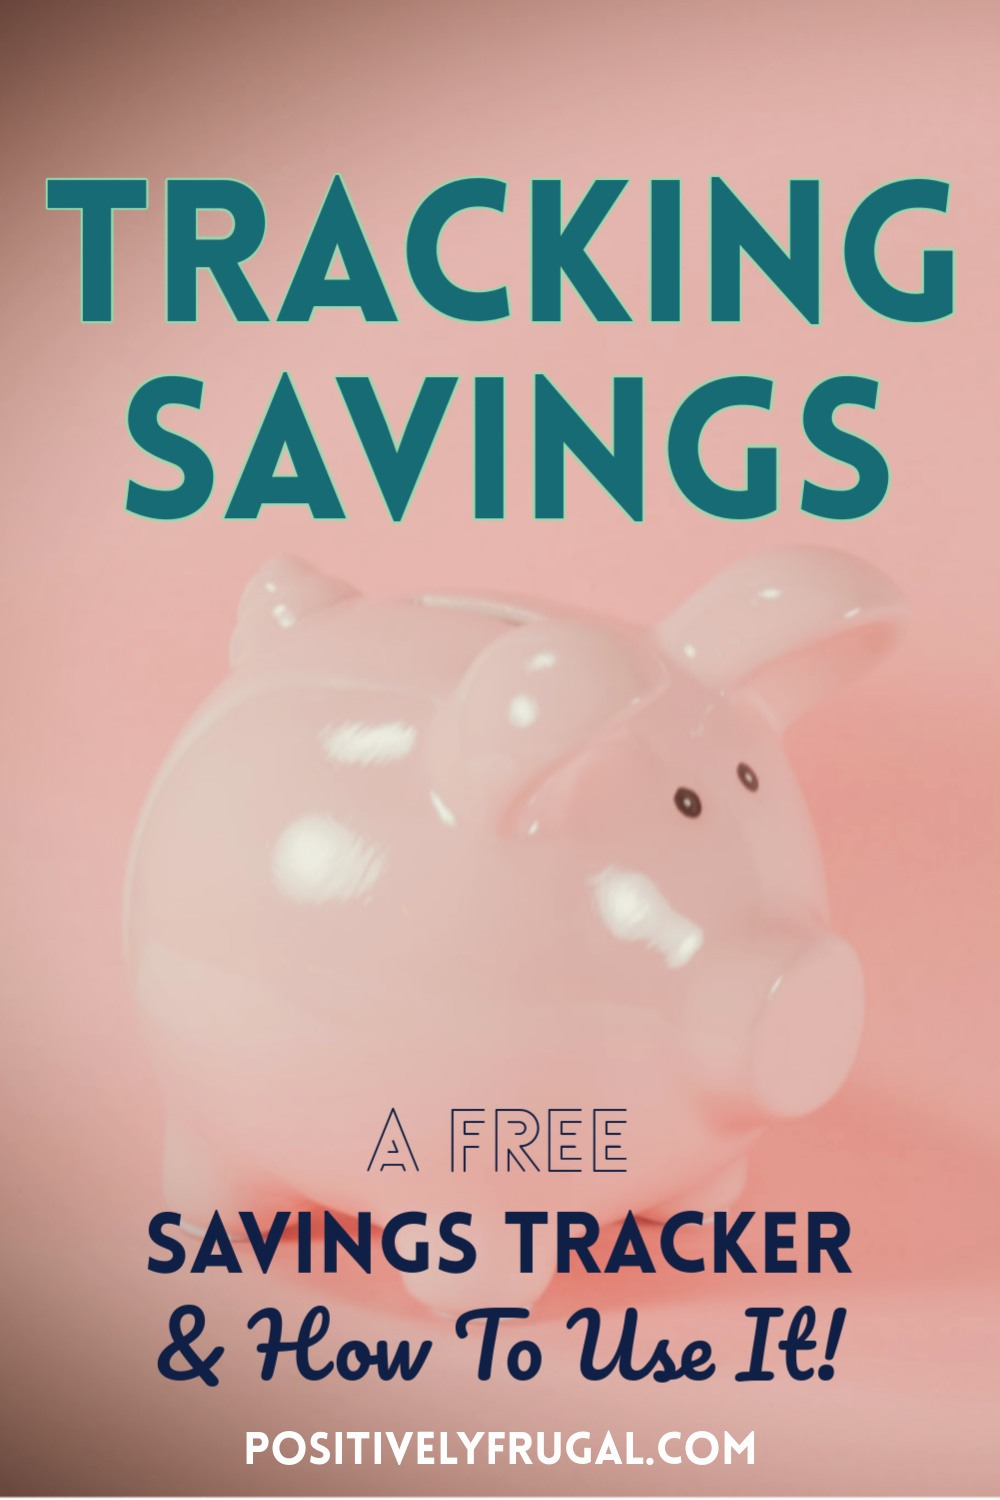 Tracking Savings Free Savings Tracker How To Use It by PositivelyFrugal.com